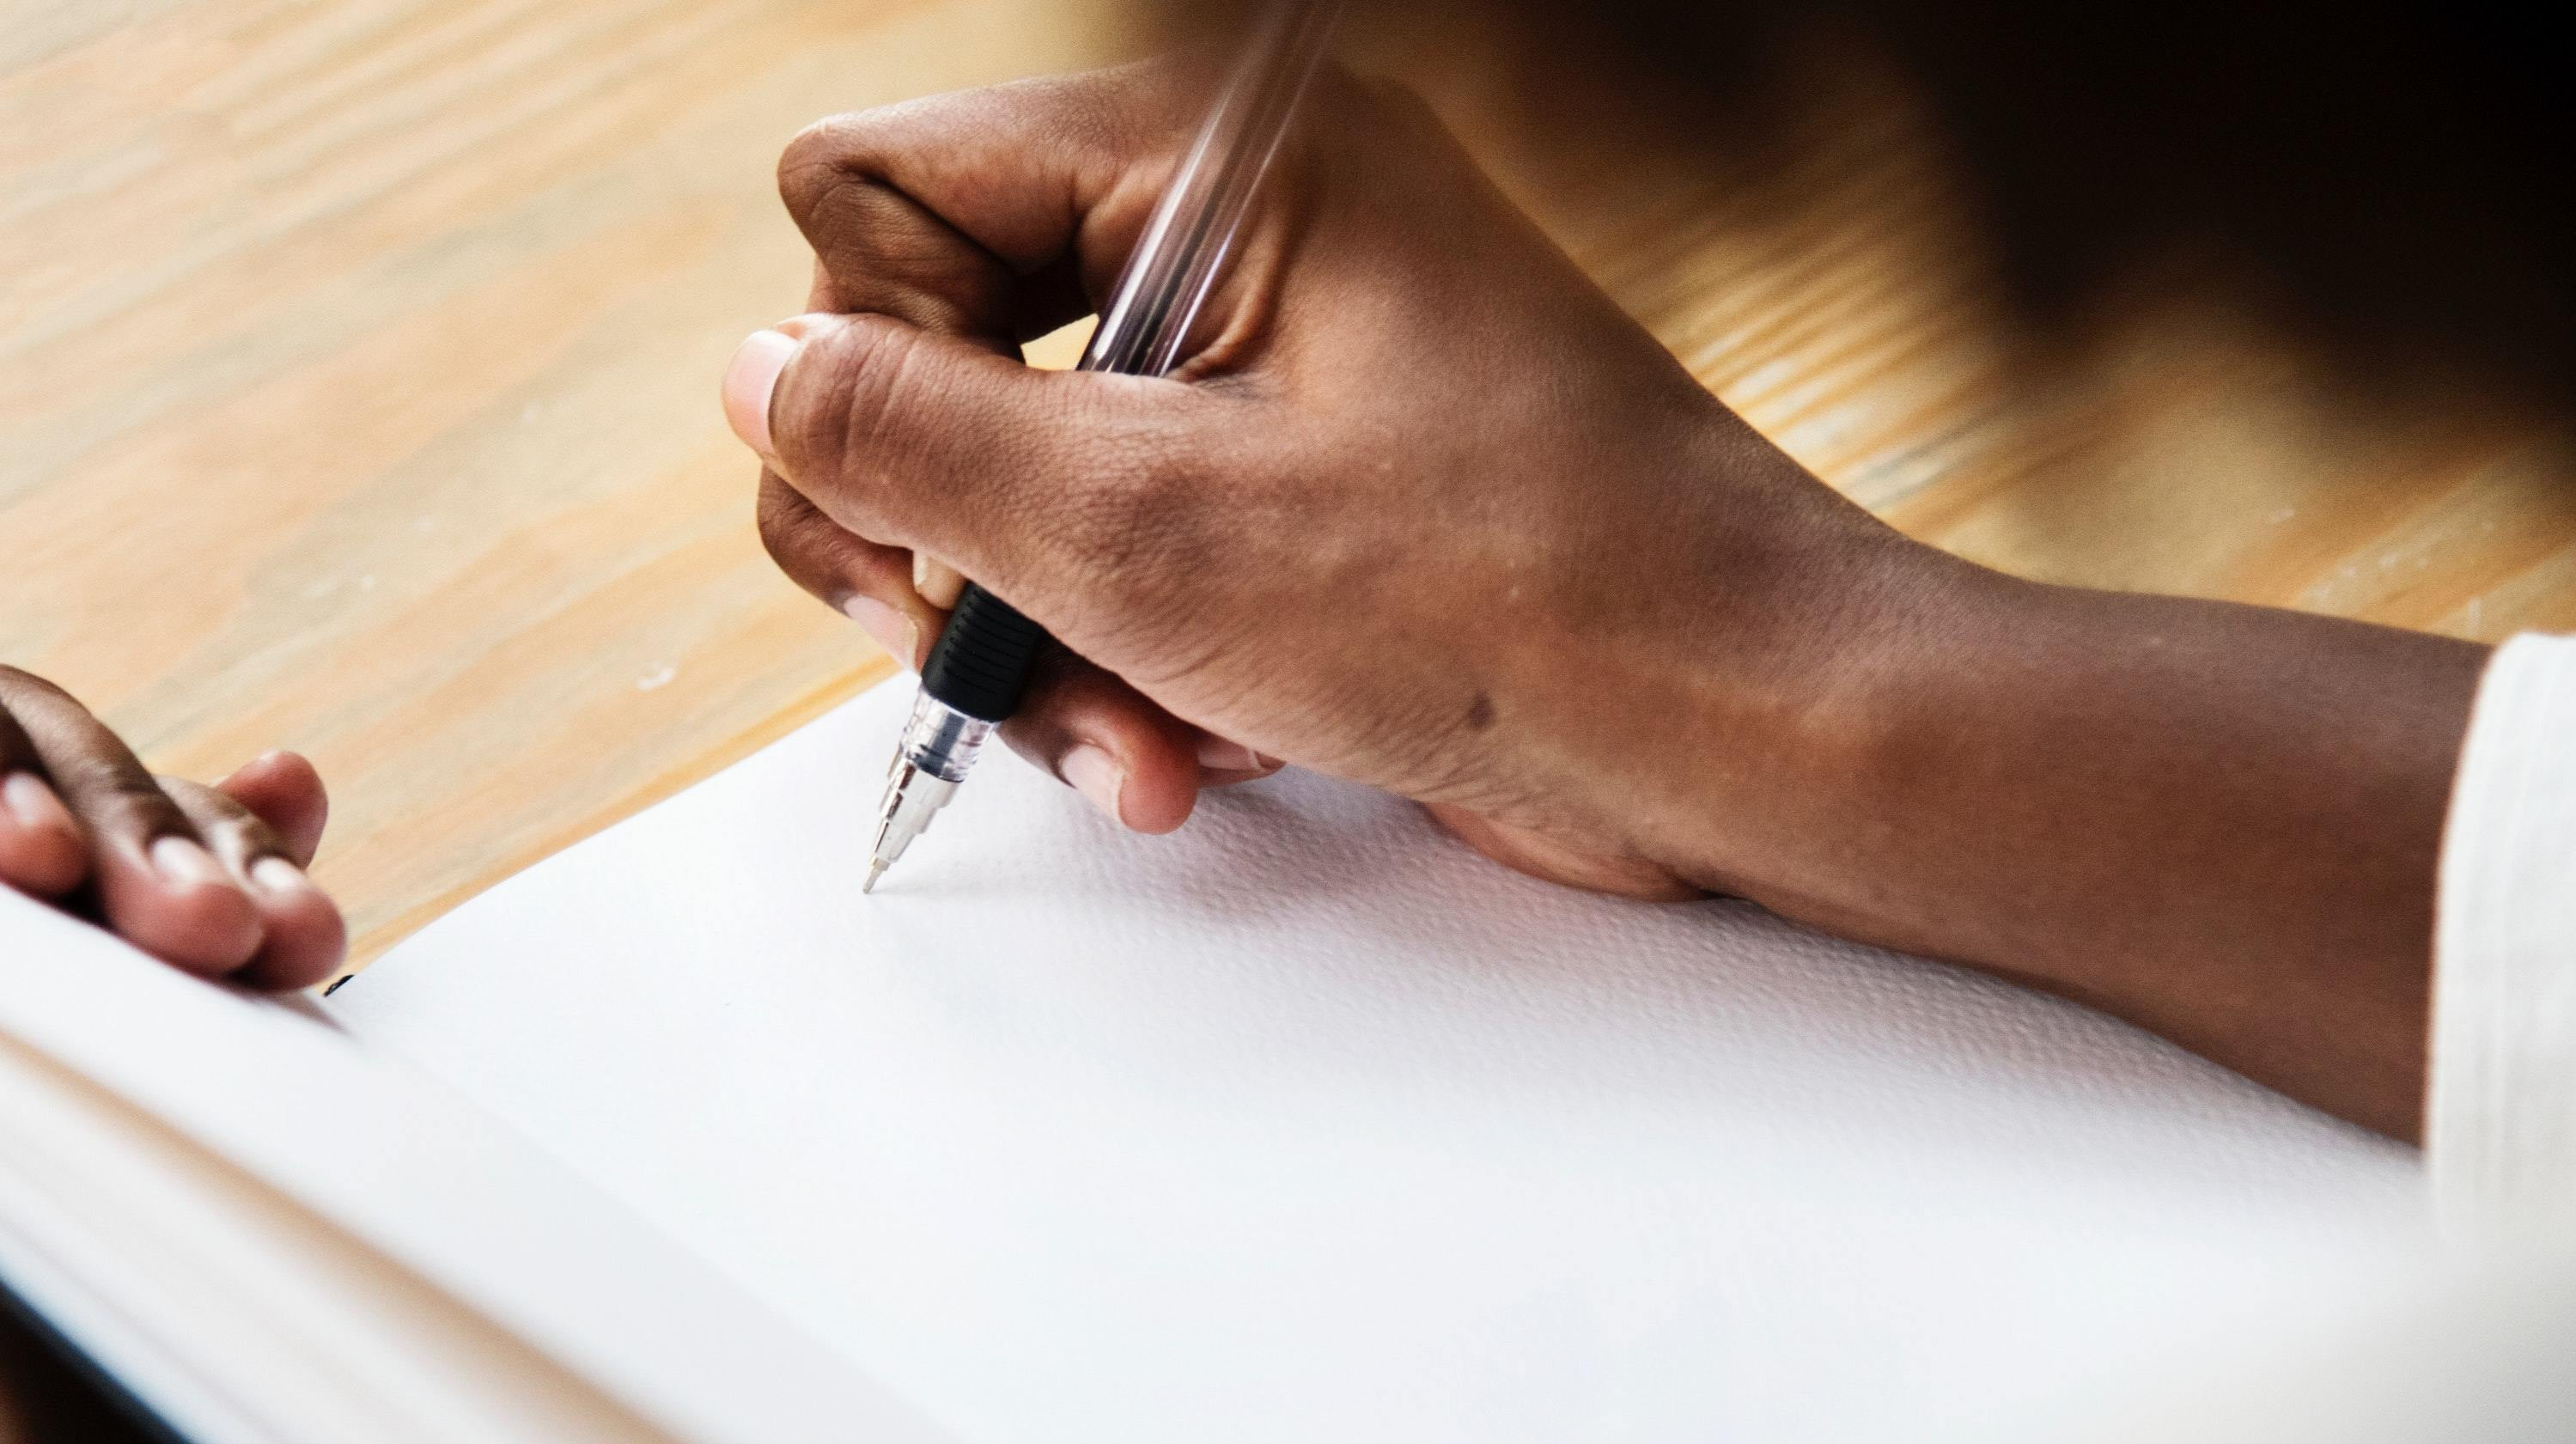 Kickstart Your Journaling With A Year's Worth Of Daily Writing Prompts